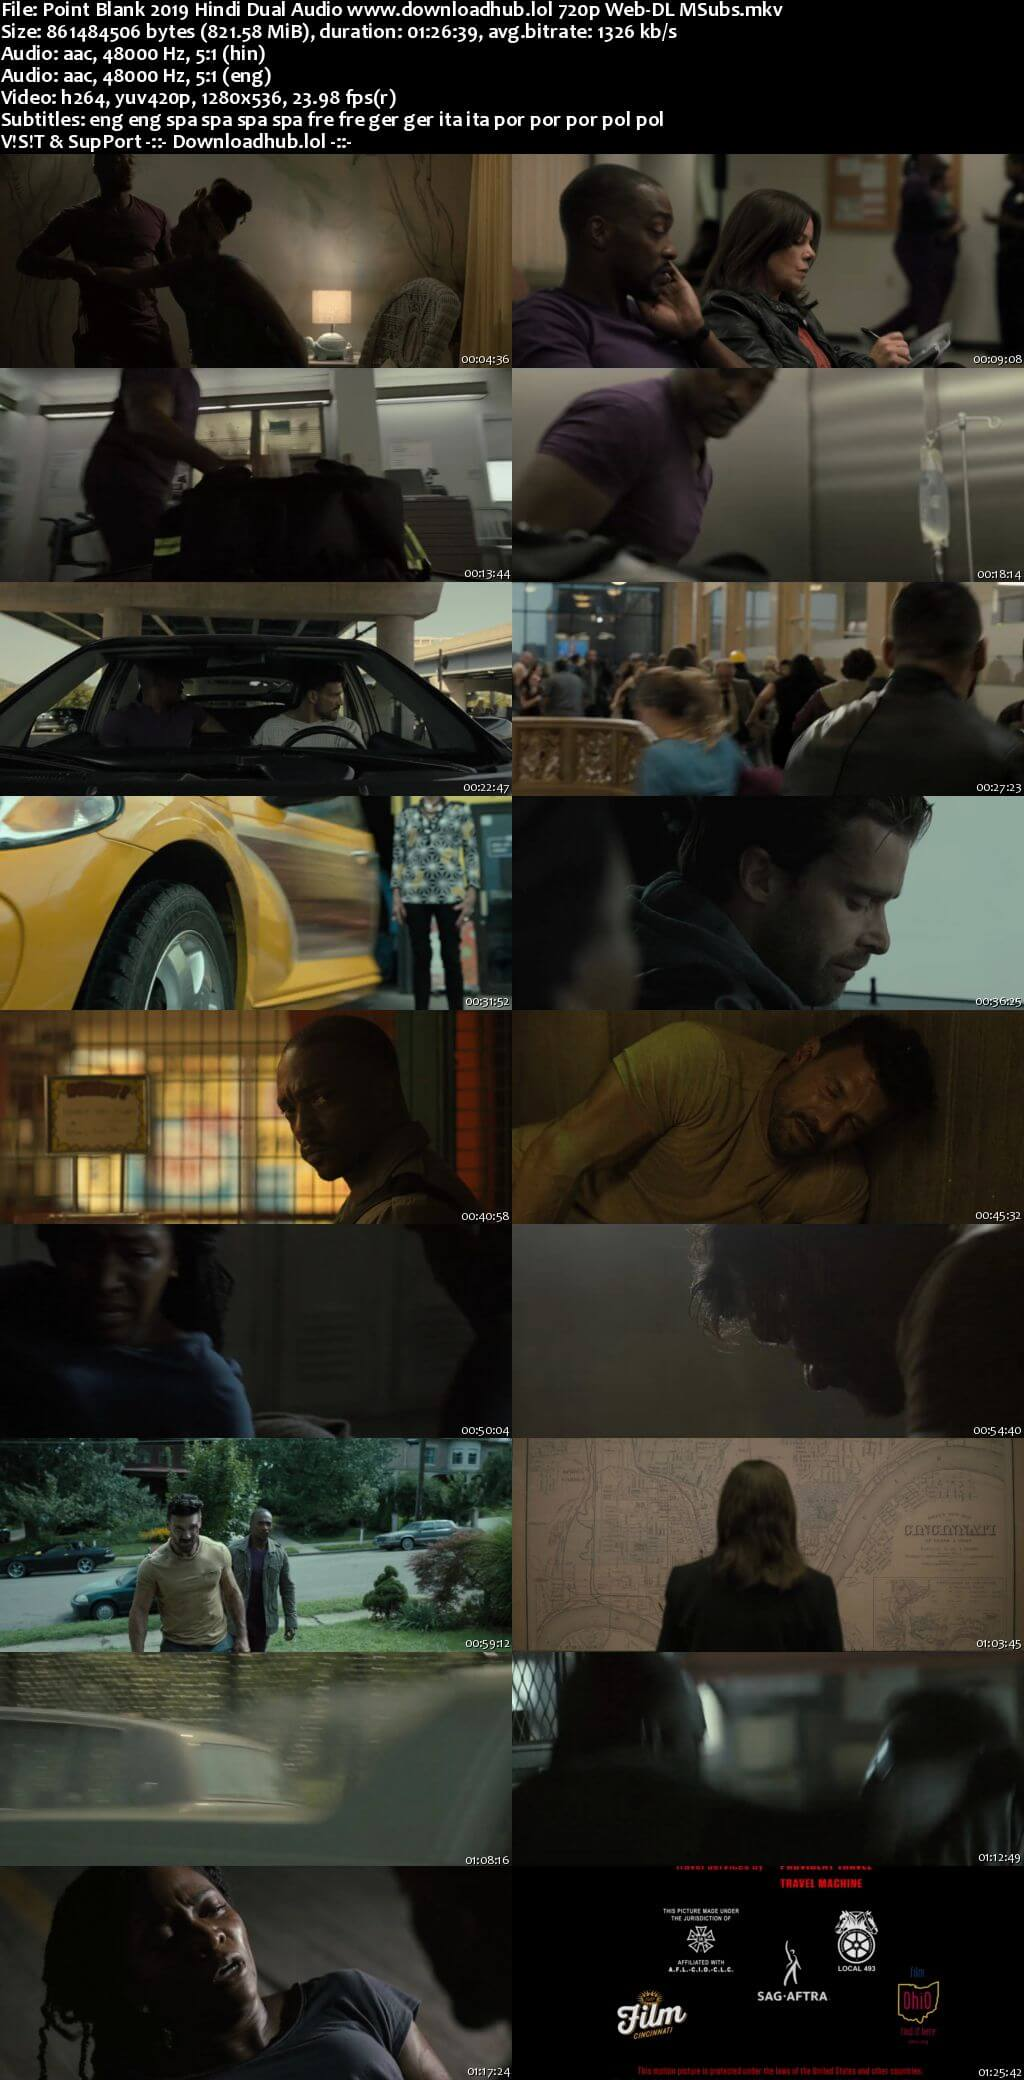 Point Blank 2019 Hindi Dual Audio 720p Web-DL MSubs